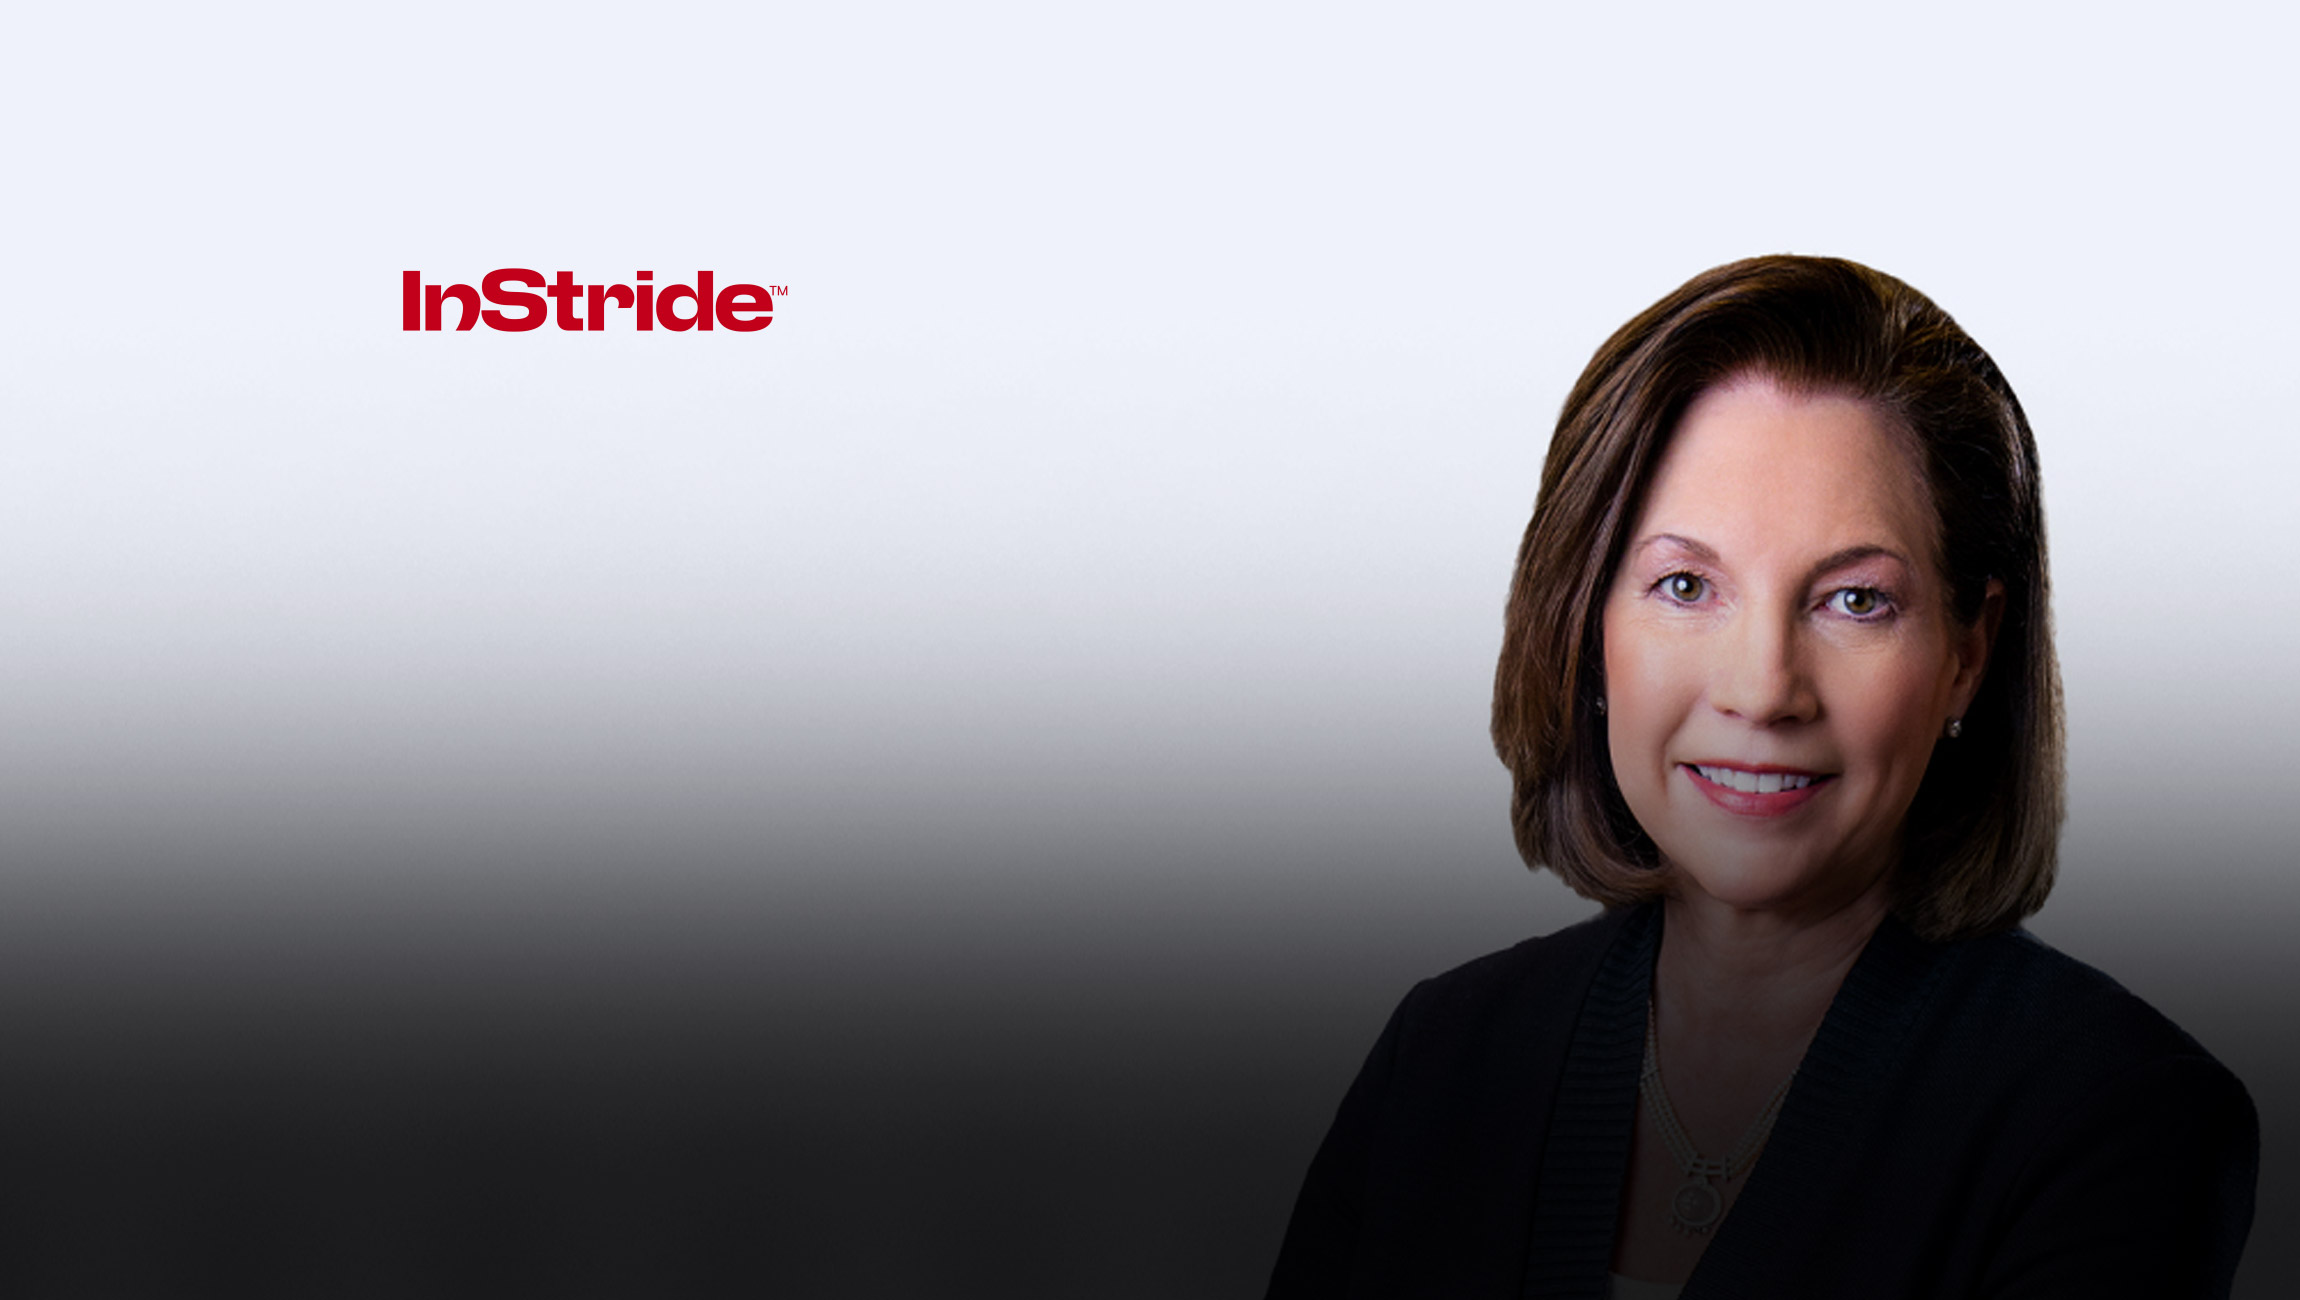 Lynne Doughtie, former Chair and CEO of KPMG, joins InStride Advisory Board